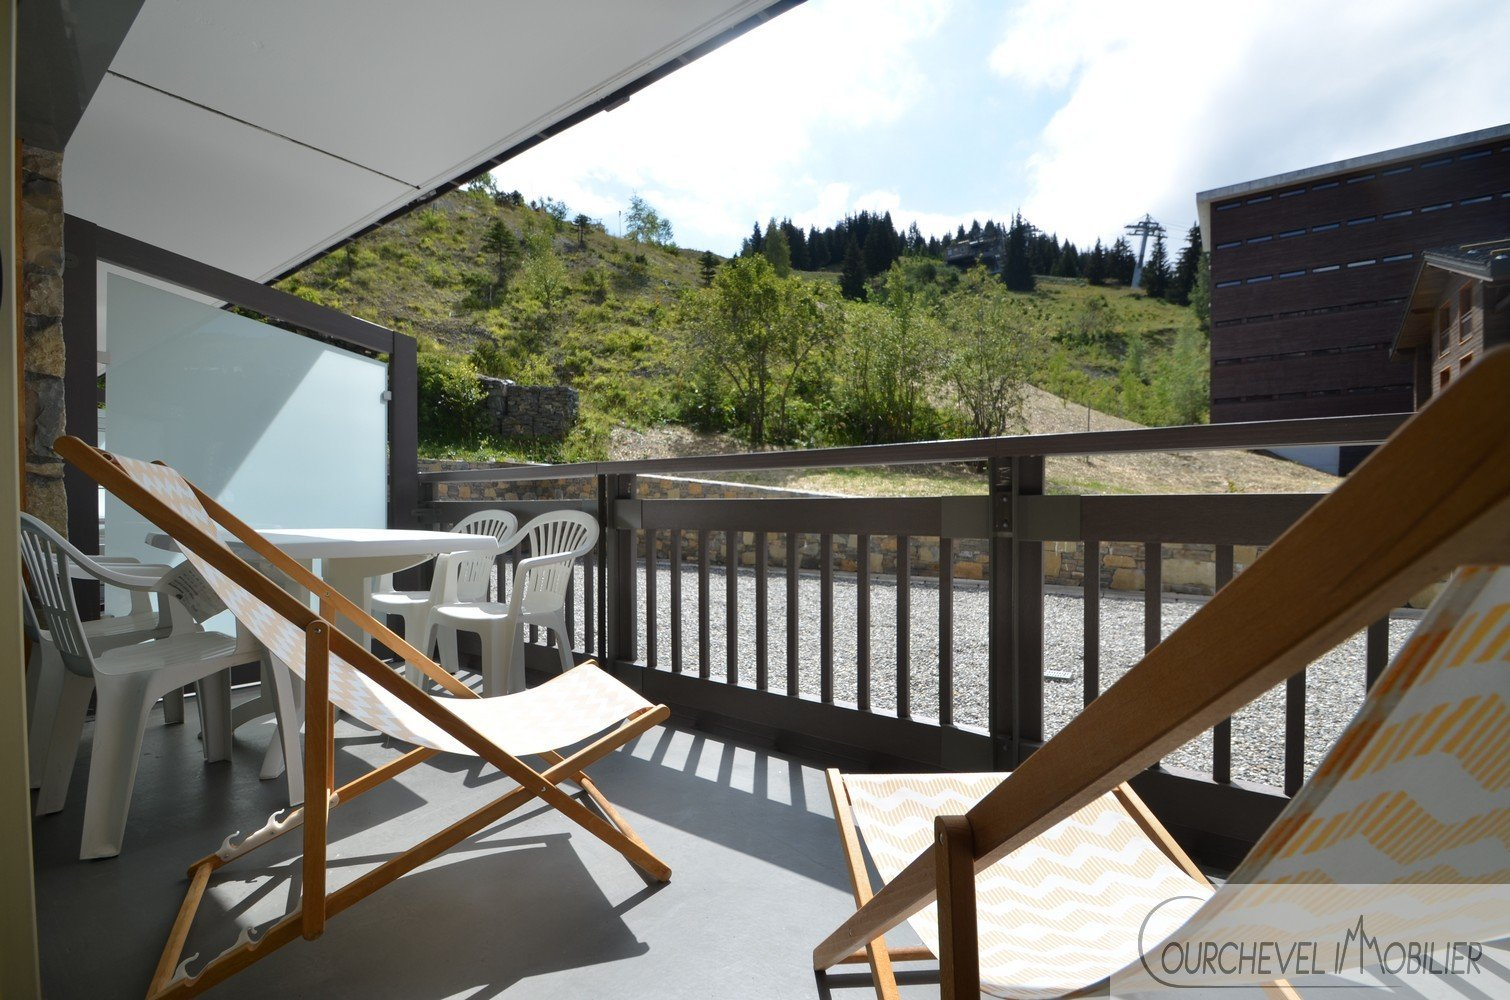 Huur Appartement - Courchevel Moriond 1650